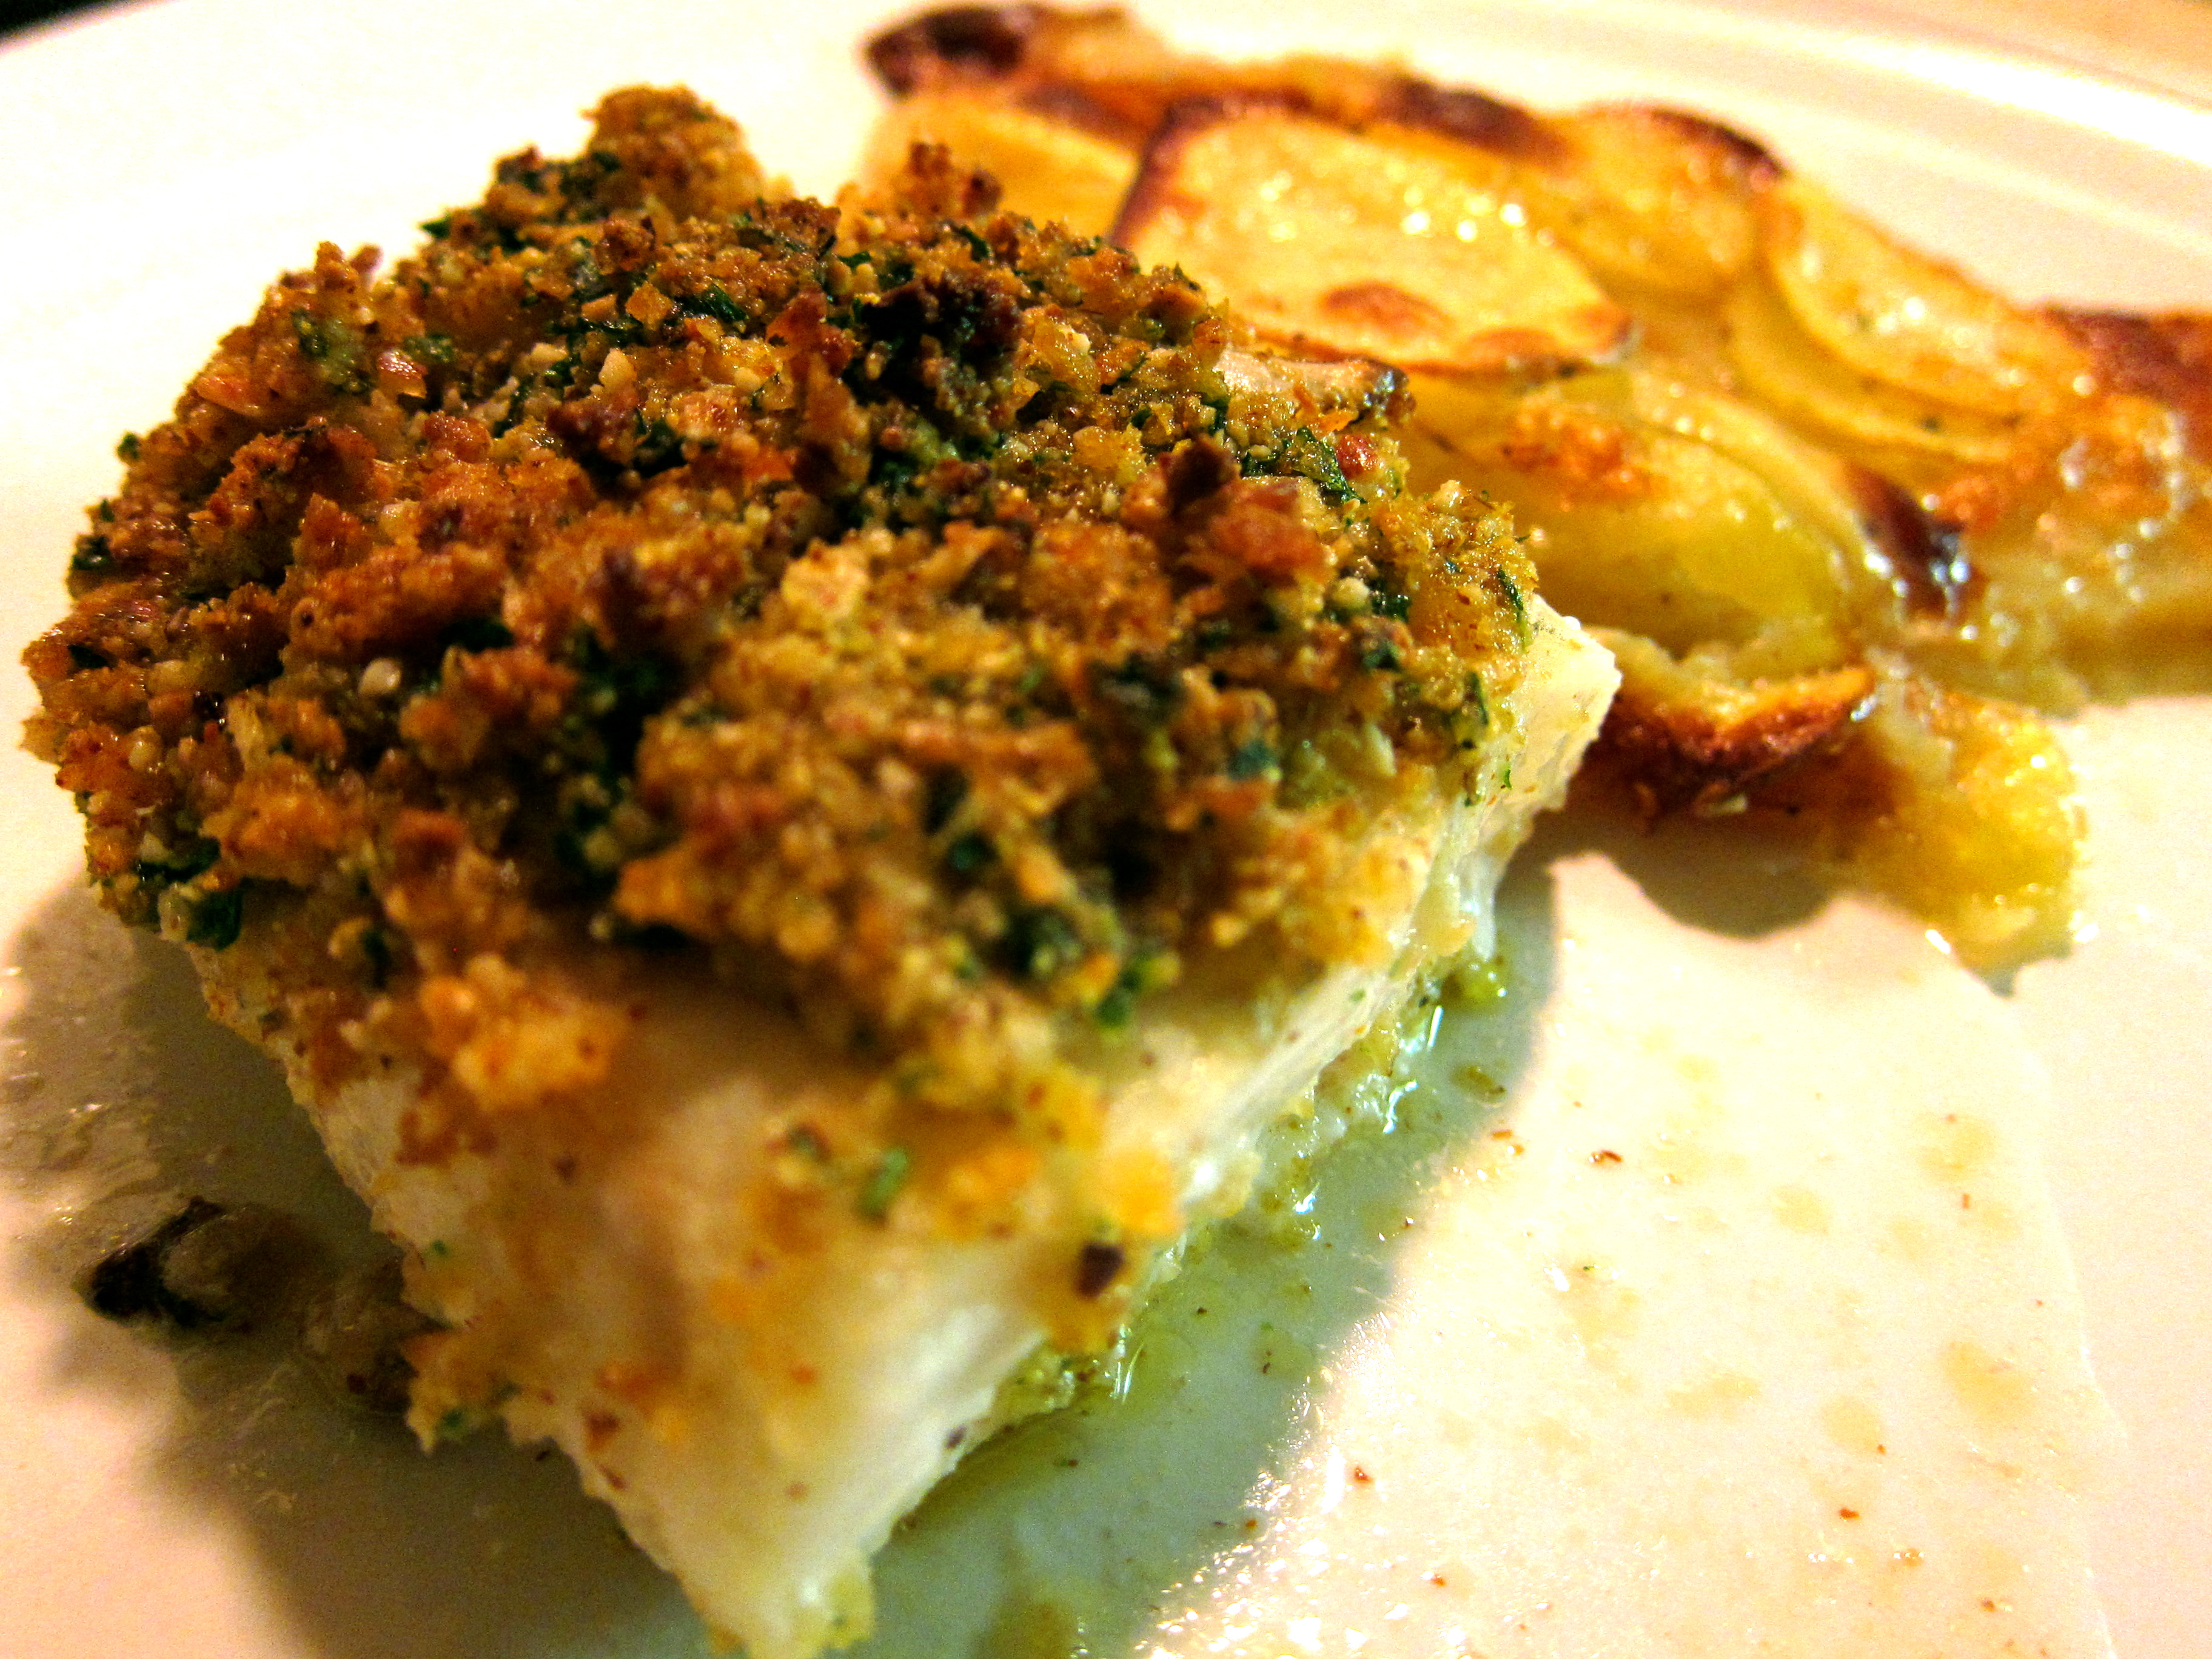 herb crusted cod fillets and scalloped potatoes dishes